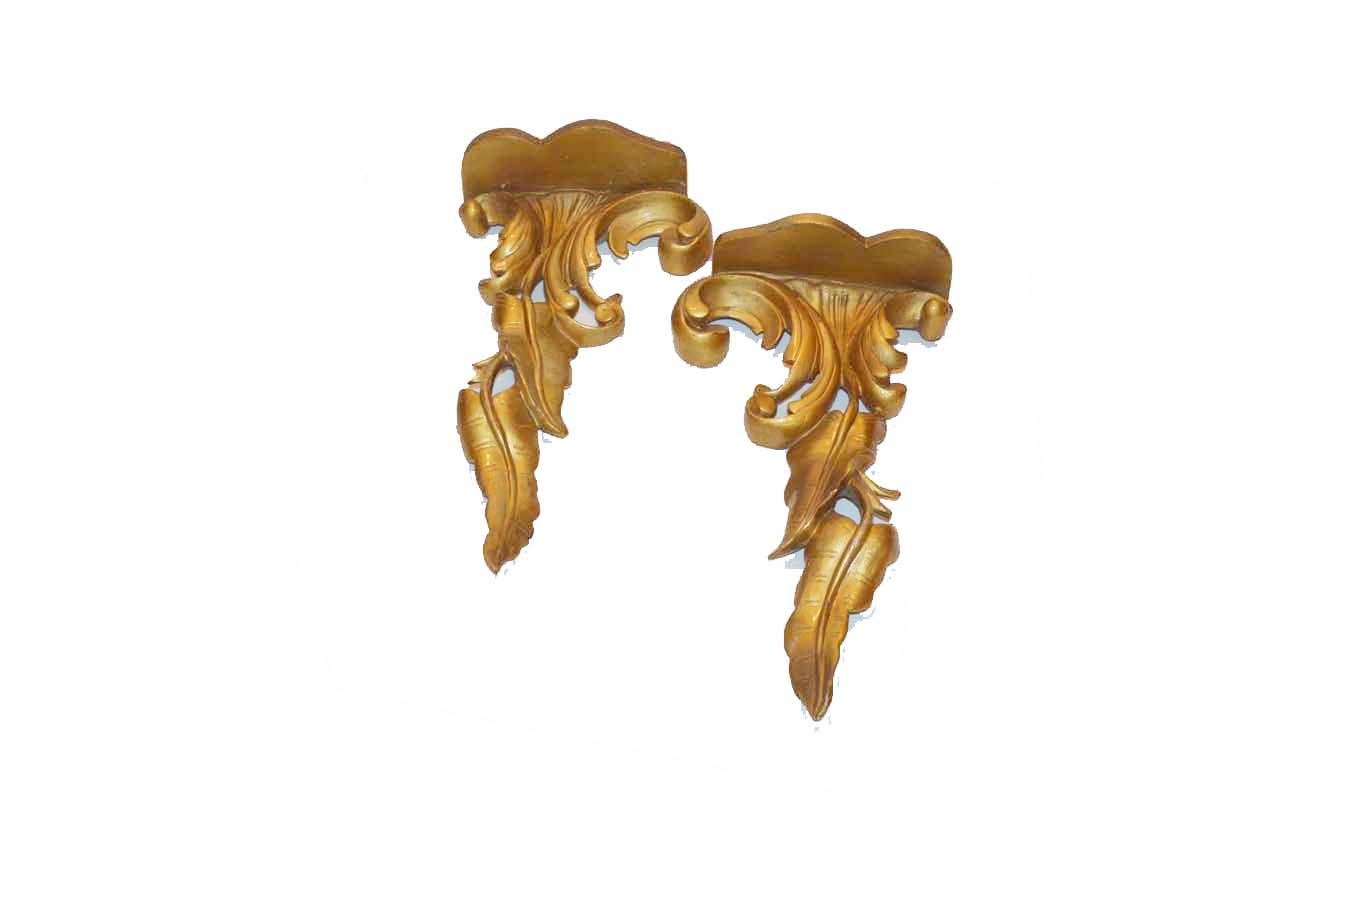 Lot 155 - A Nice Pair of Gilted Wall Brackets